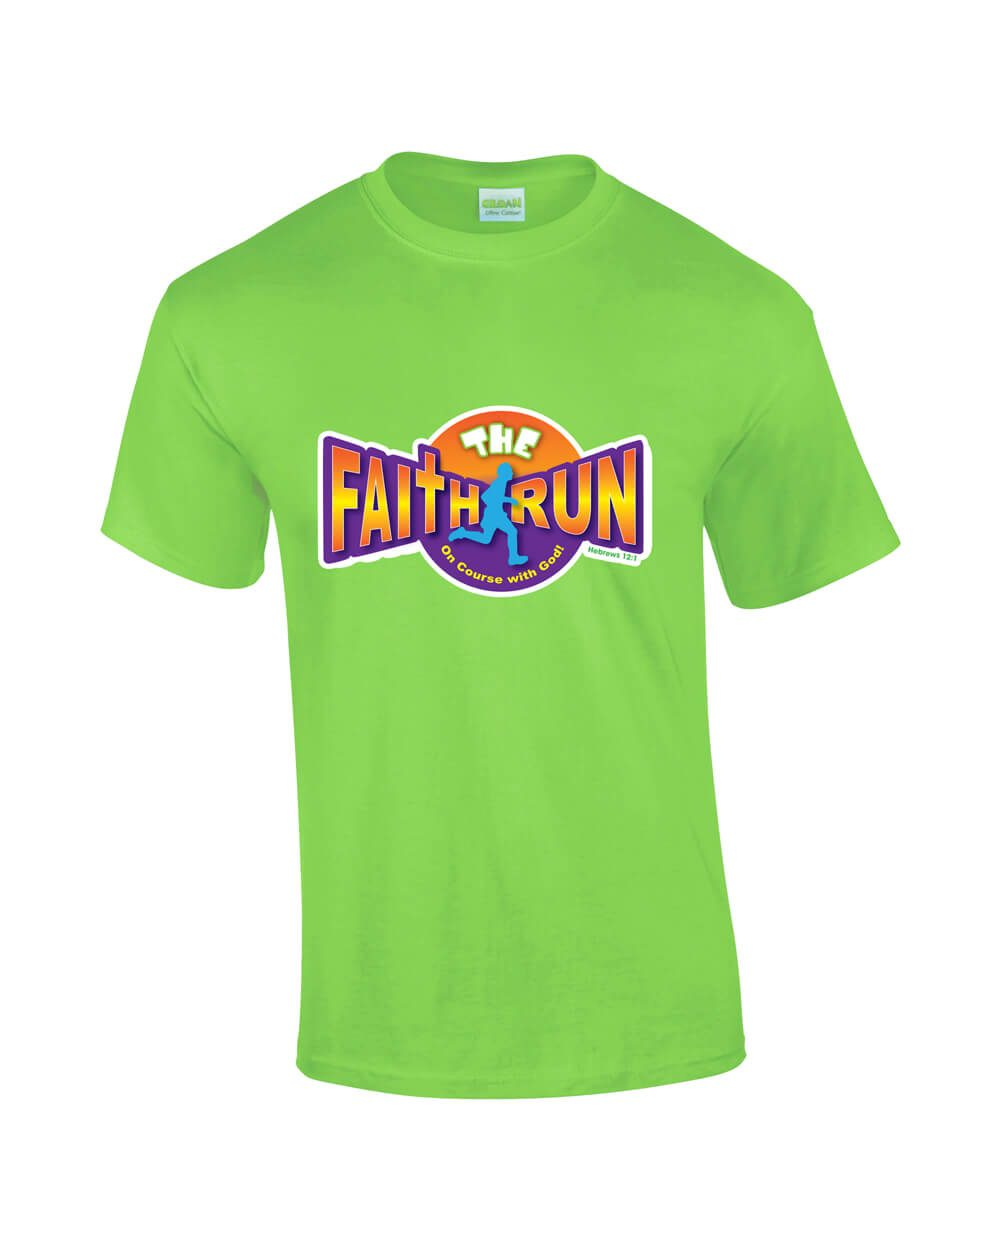 VBS The Faith Run Children T-shirt (Medium)